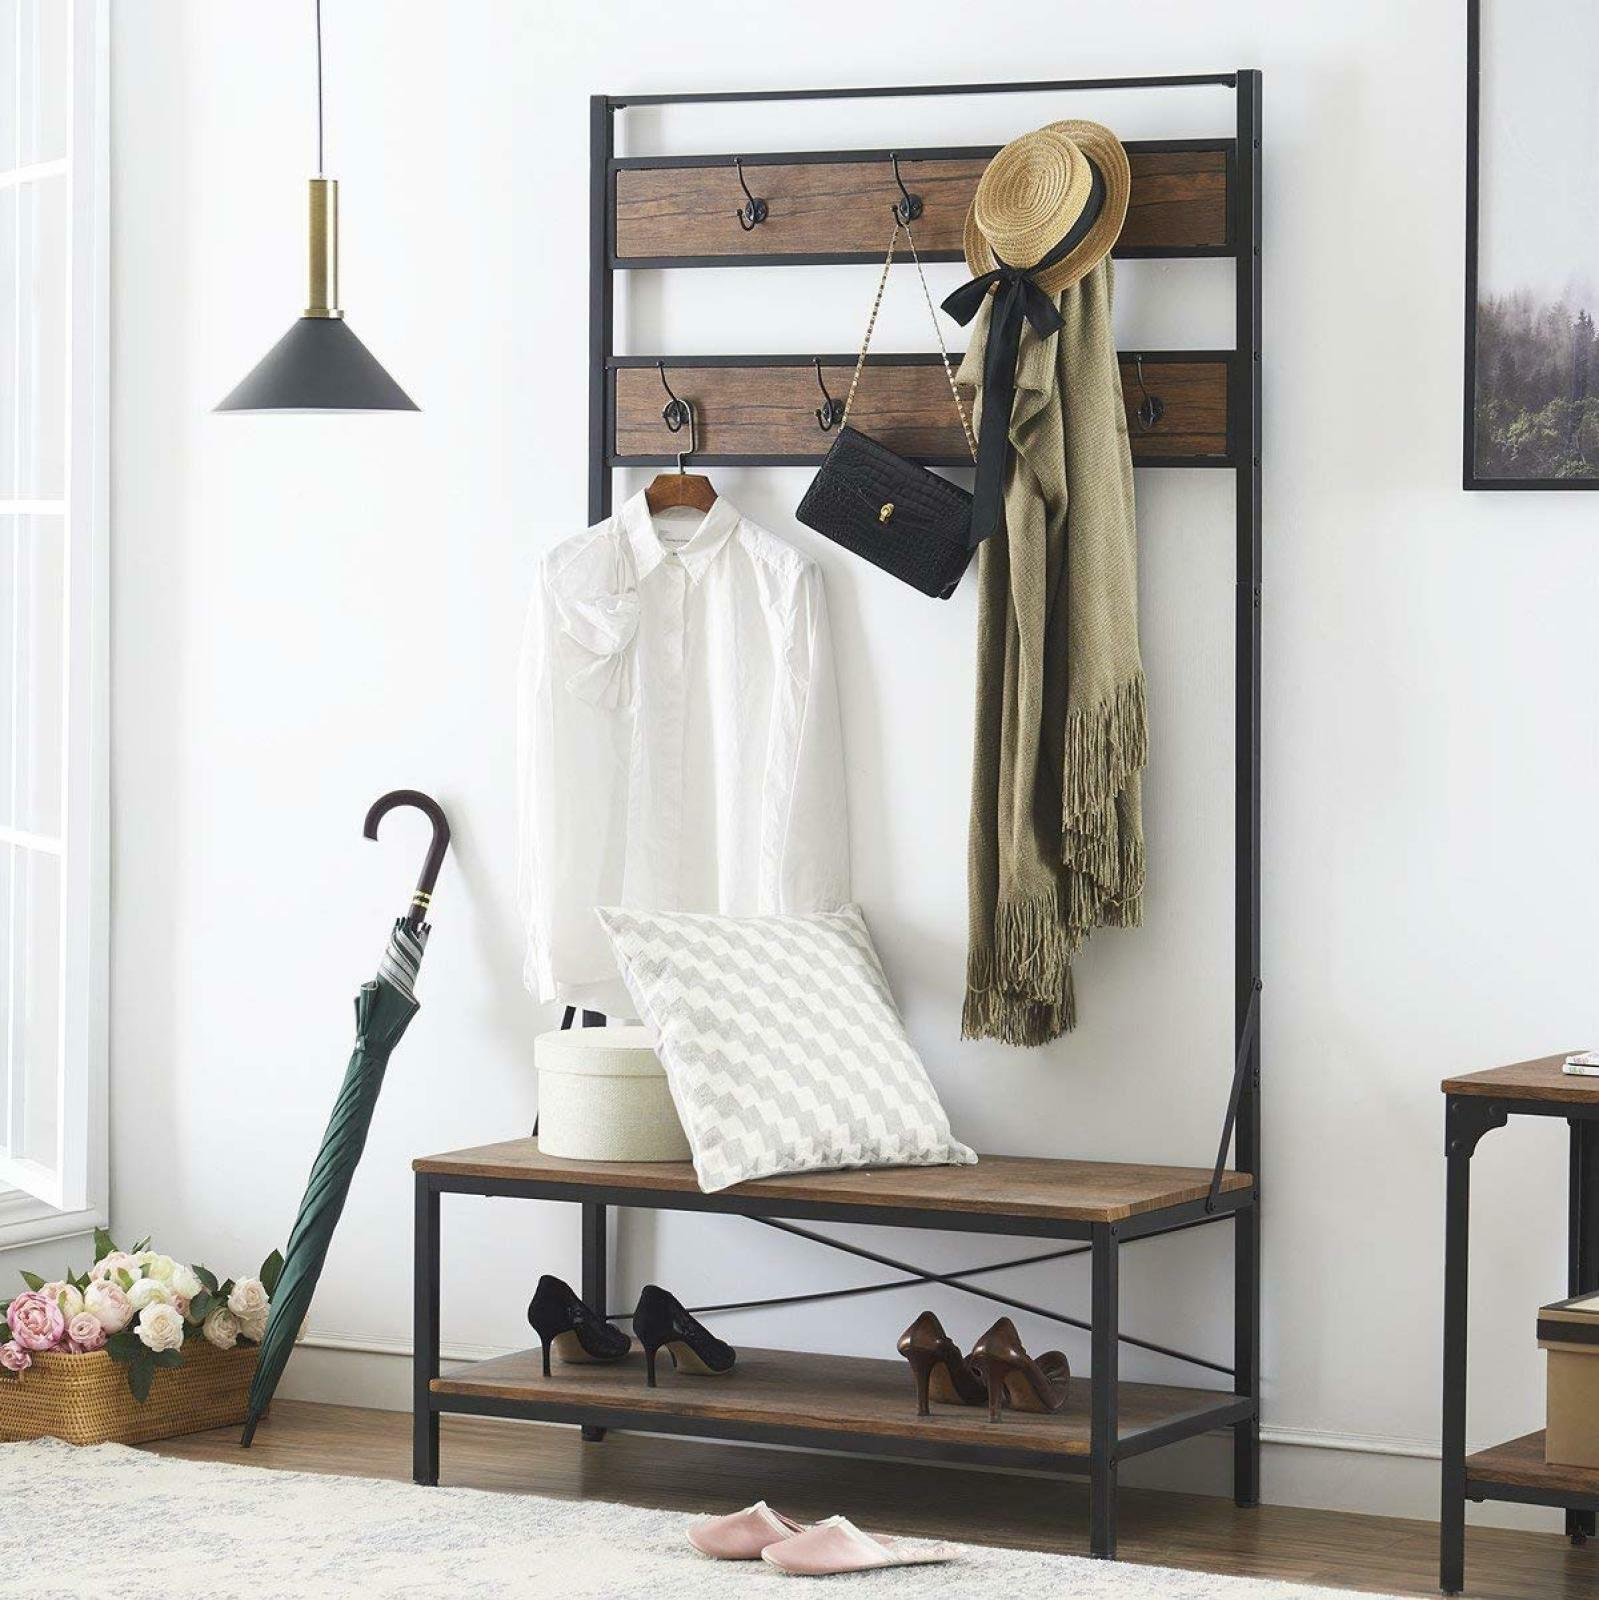 Coat And Shoe Storage.Details About Entryway Coat And Shoe Rack With Seat Shoe Storage Bench Hallway Shelf Hall Tree